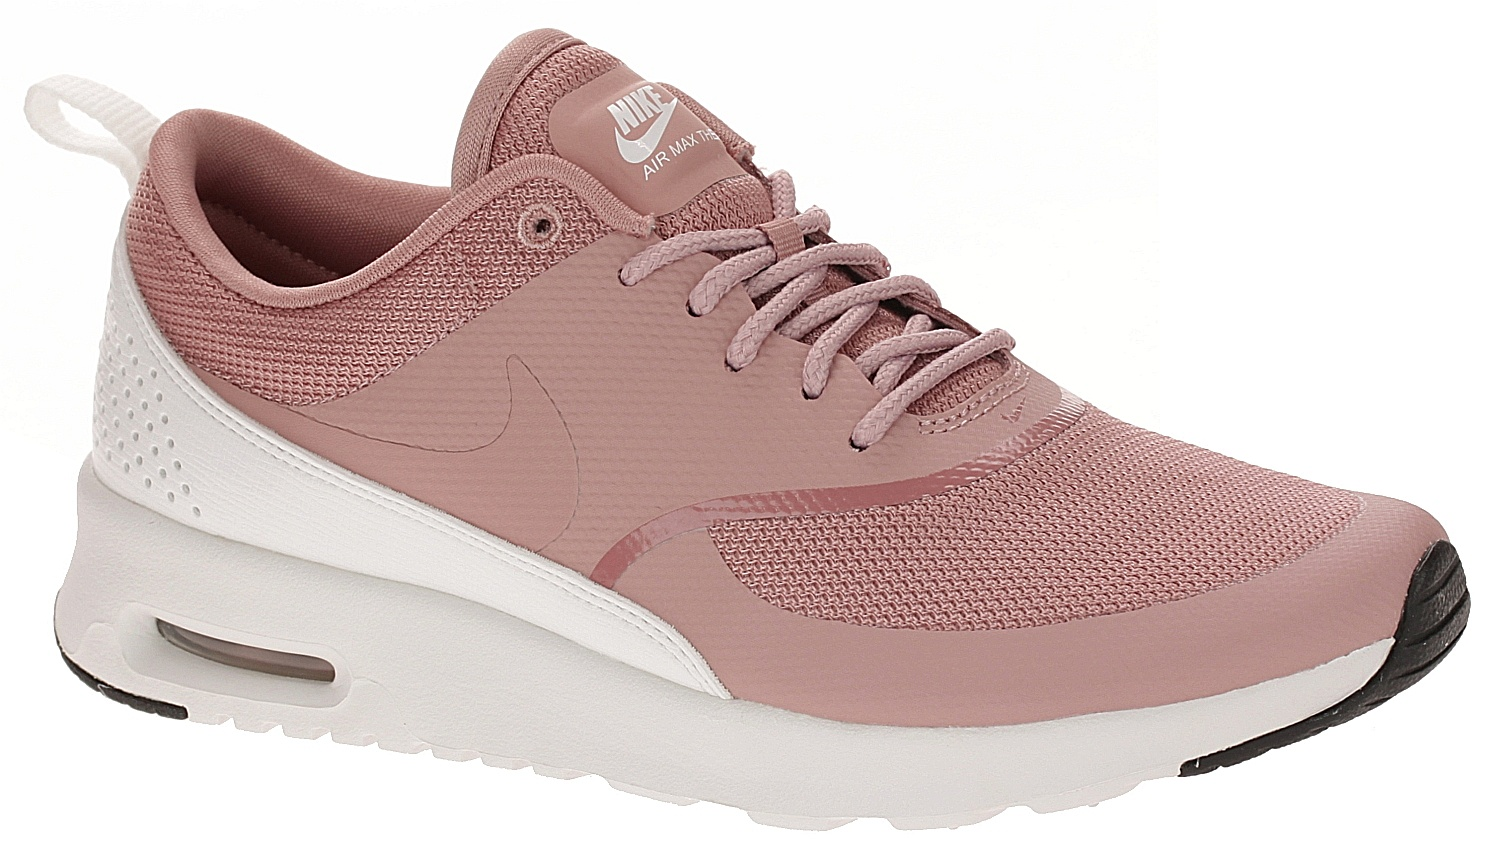 finest selection b0c30 d27e1 shoes Nike Air Max Thea - Rust Pink Rust Pink Summit White Black ...